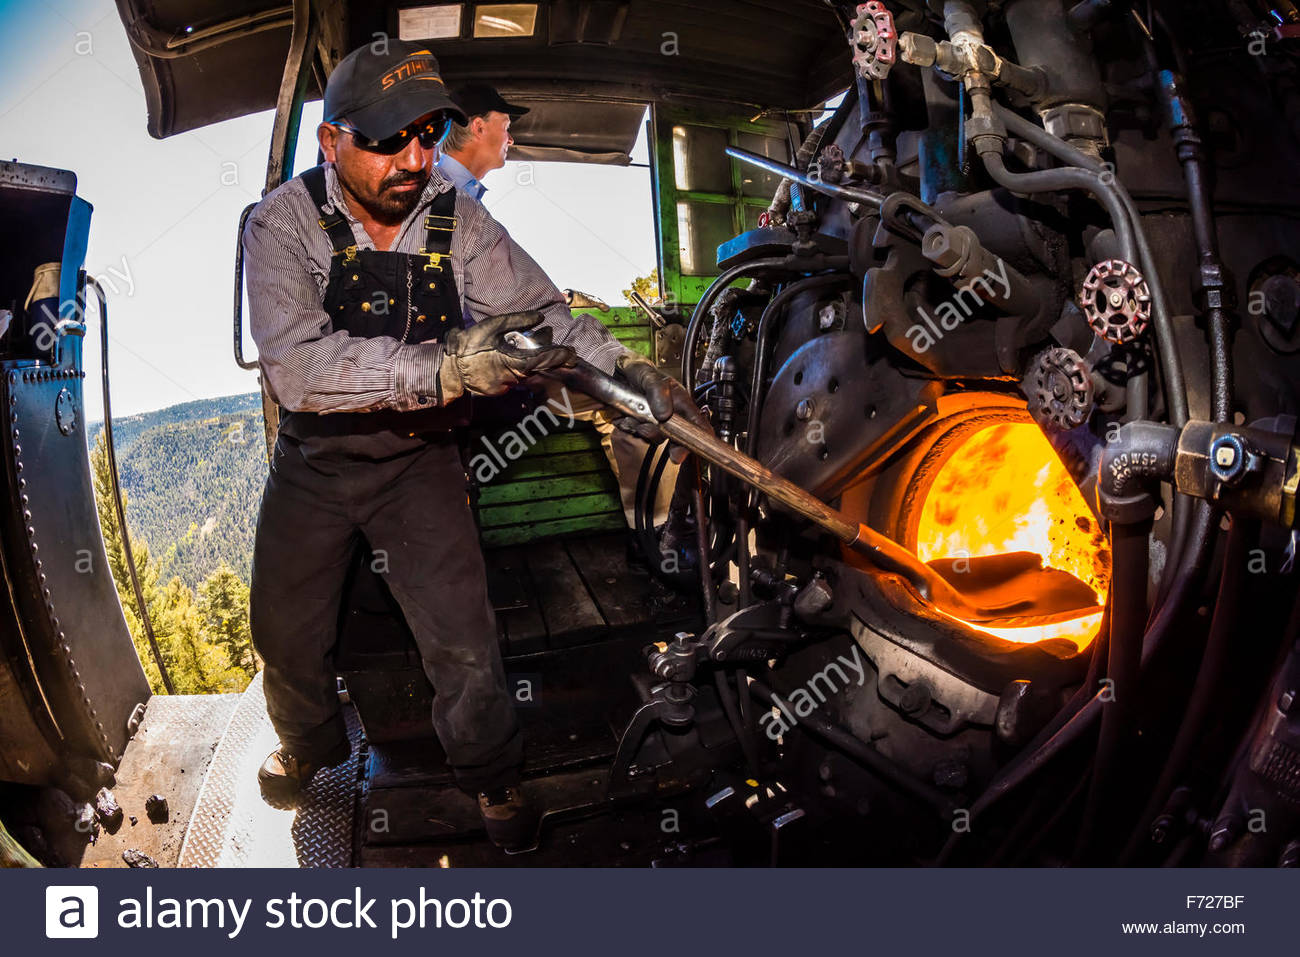 The fireman stokes the fire in the boiler of the steam engine (Colorado Governor John Hickenlooper sits behind), - Stock Image